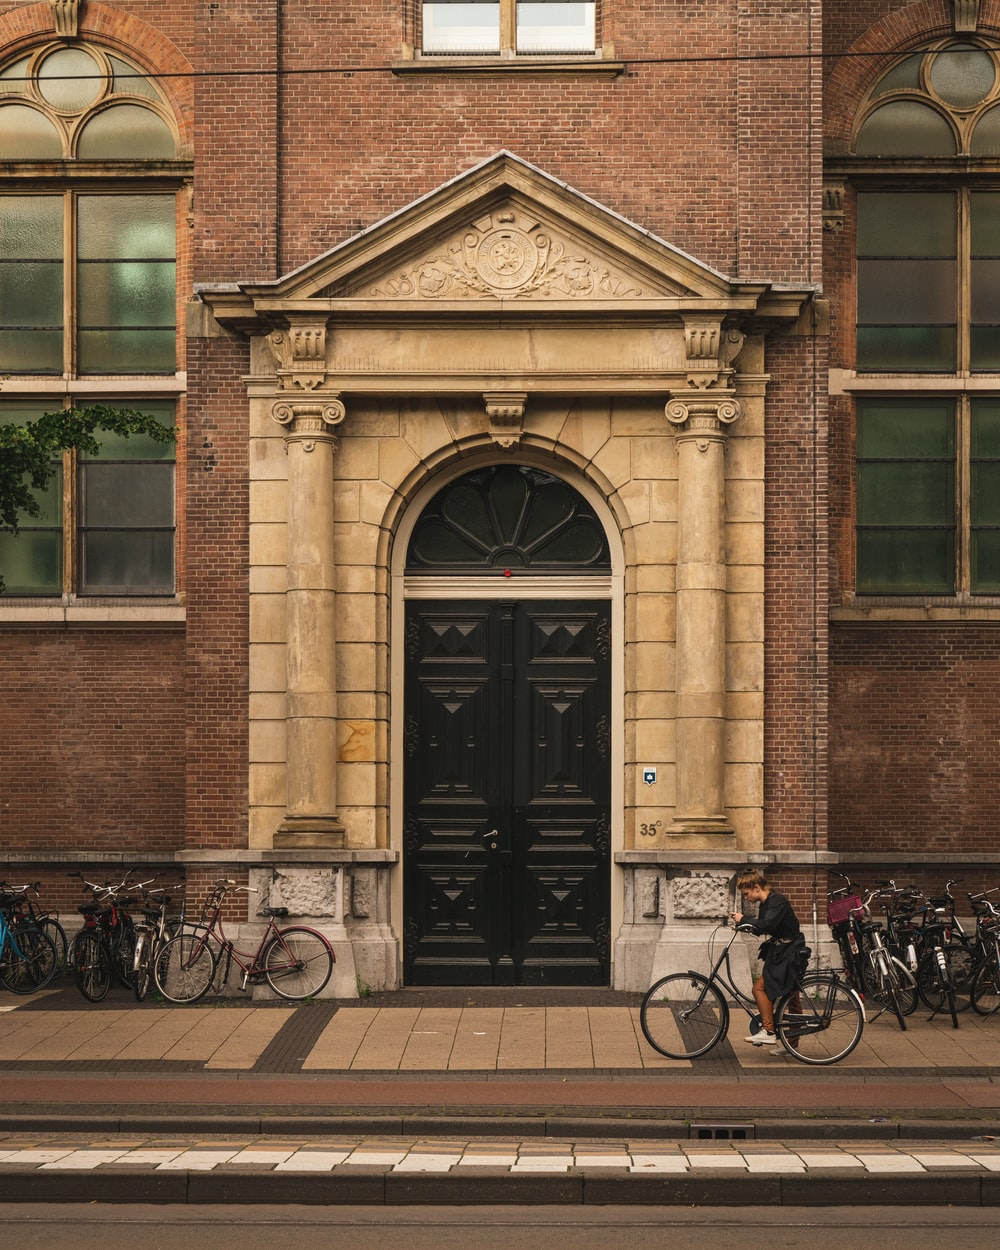 black bicycle parked beside brown concrete building during daytime